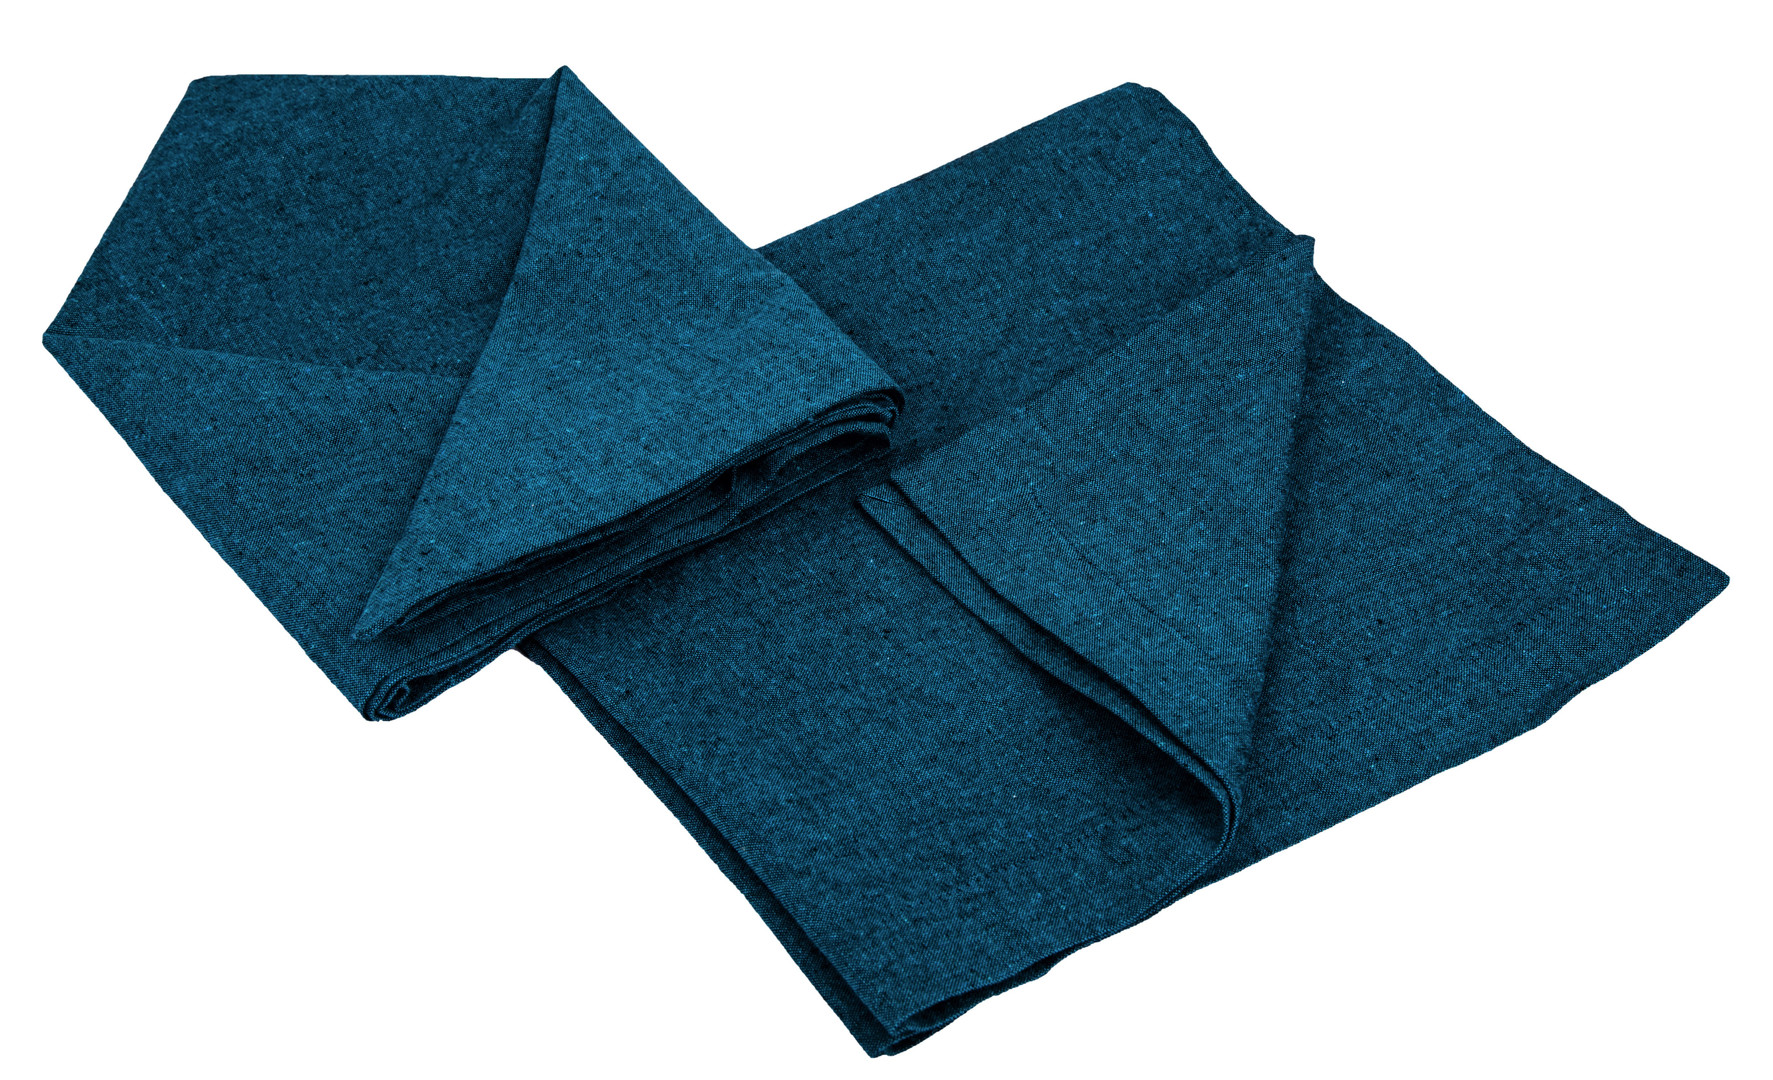 Atmos Green Recycled Cotton Napkins - Teal Color